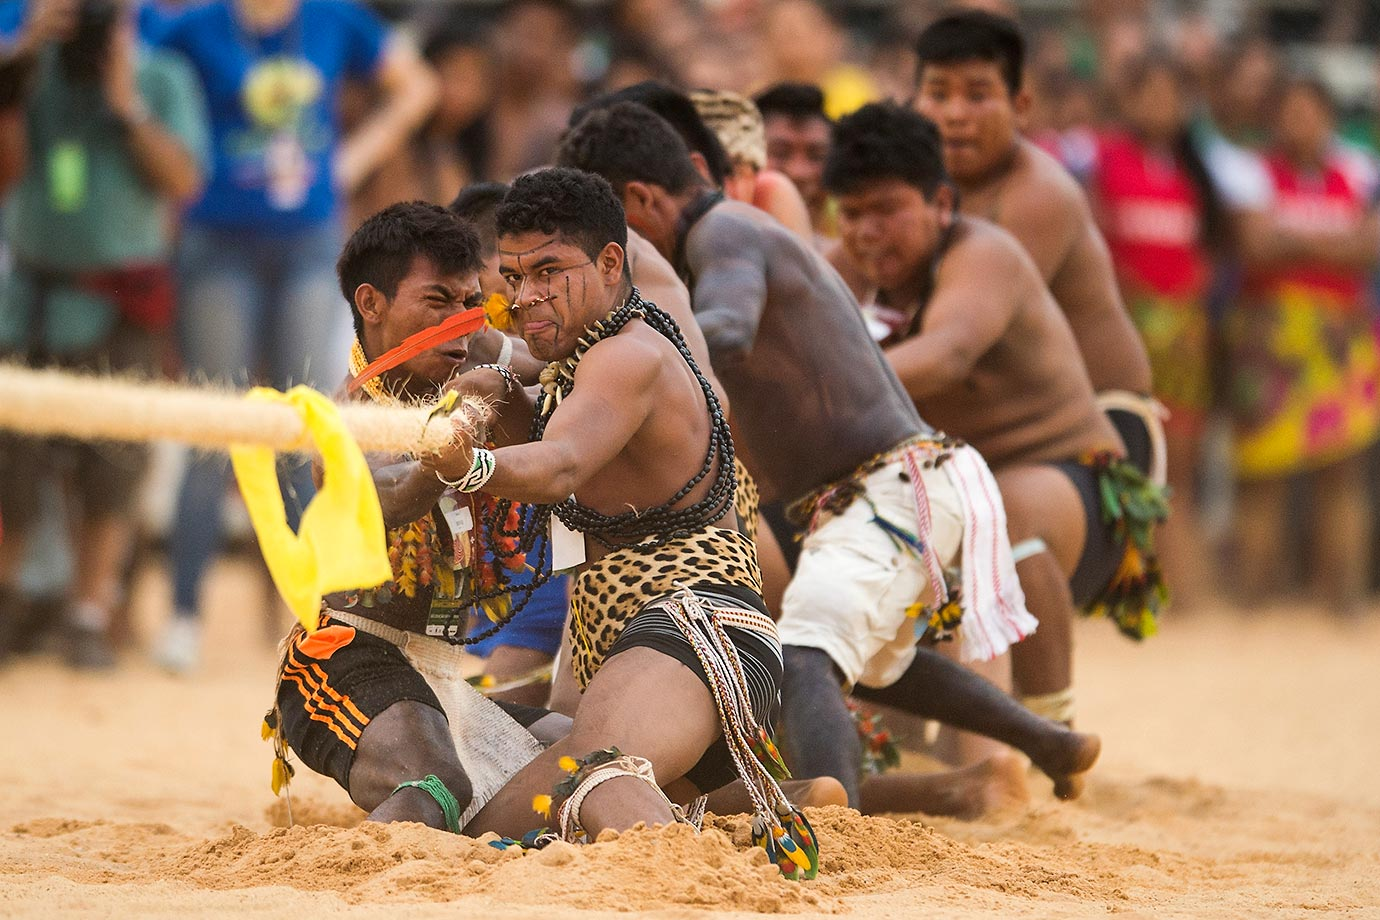 Brazilian indigenous natives participate in the tug-of-war competition at the first World Indigenous Games in Palmas, Brazil.